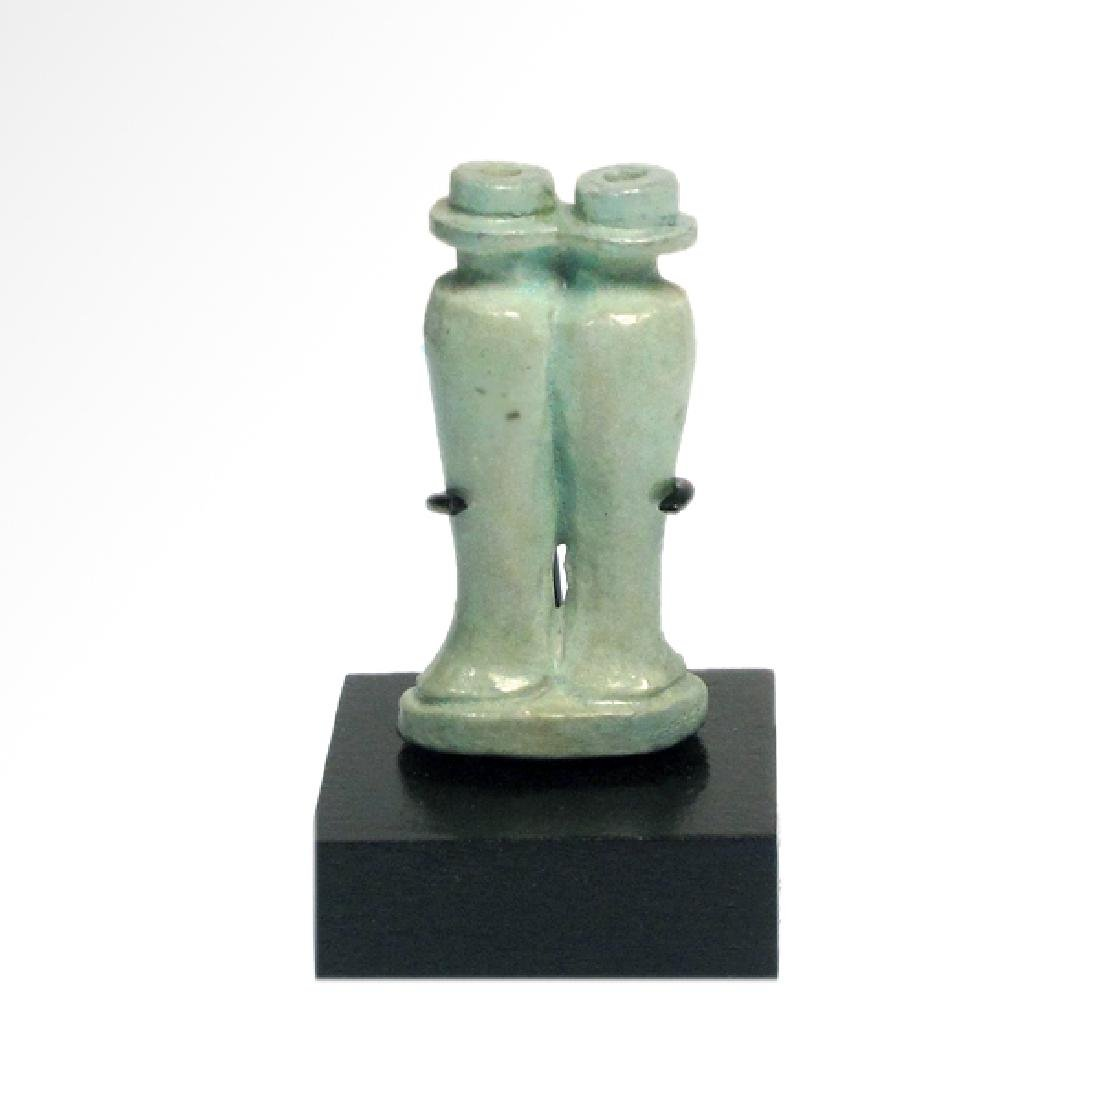 Small Egyptian Cosmetic Double Vessel, c. 600 B.C. - 2